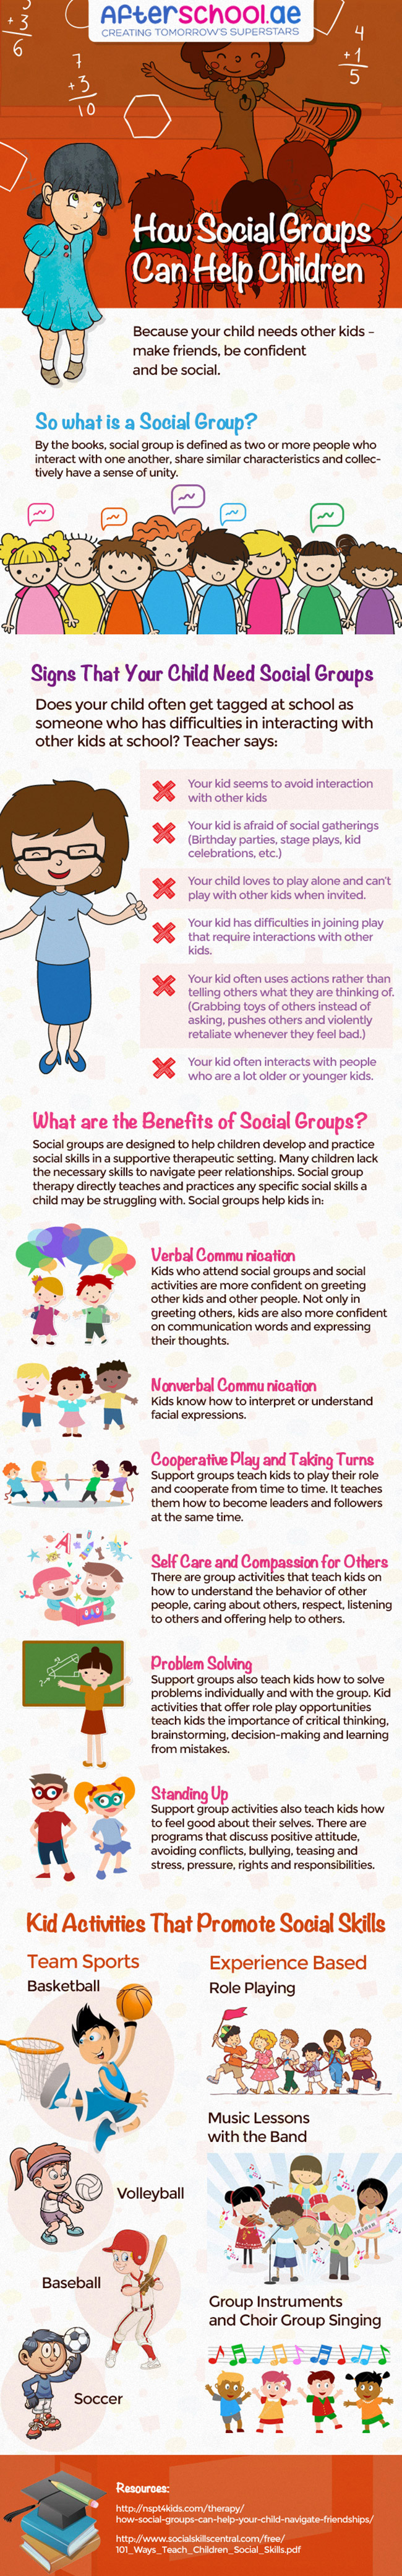 How Social Groups can Help Children